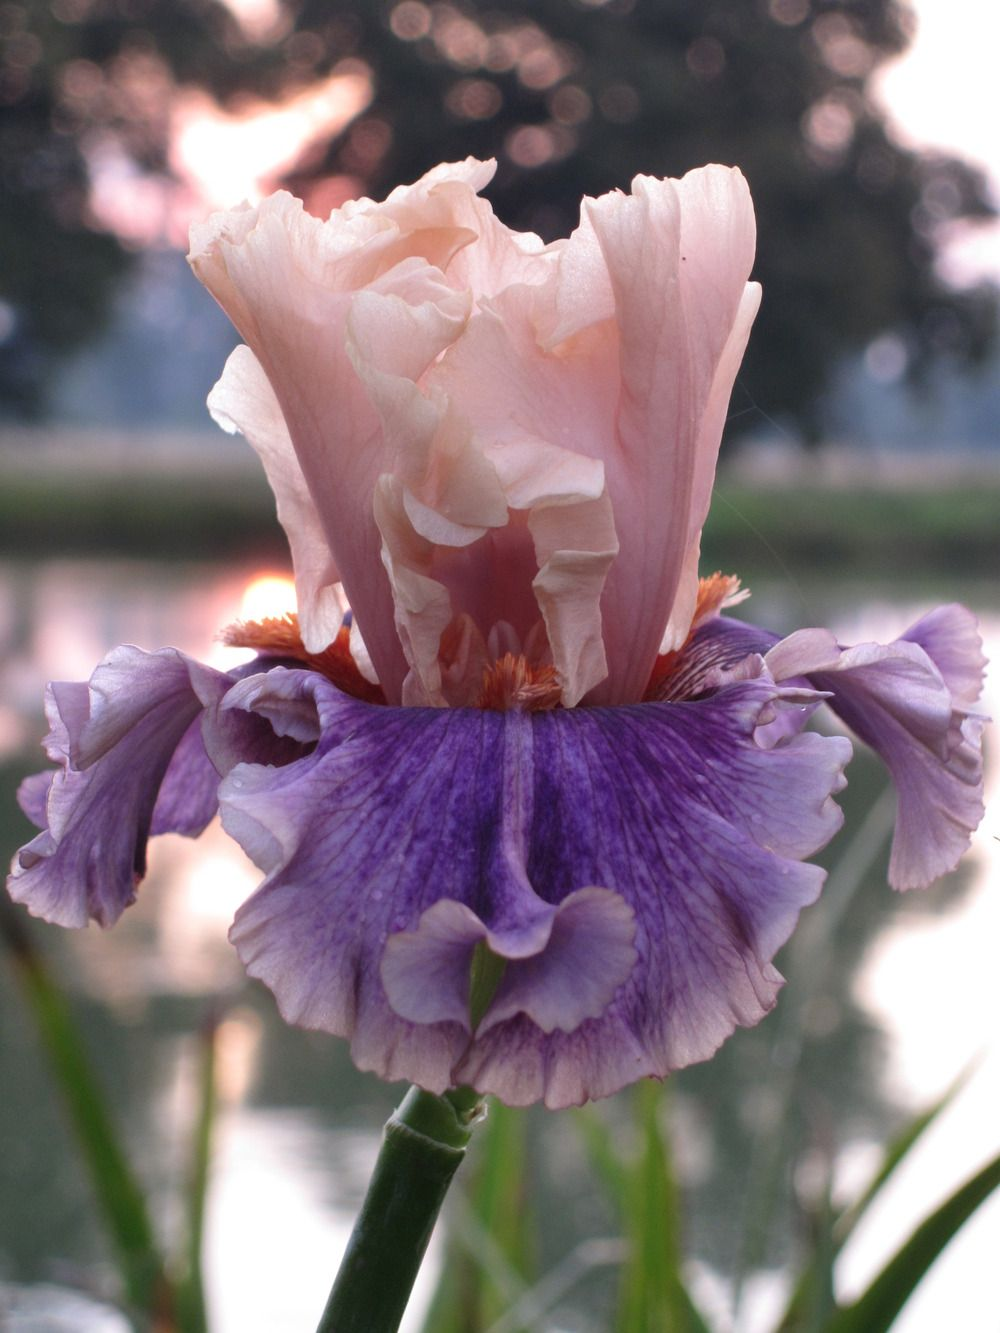 Photo Of The Bloom Of Tall Bearded Iris Iris Paris Memory Posted By Barashka All Things Plants Bearded Iris Iris Flowers Iris Garden